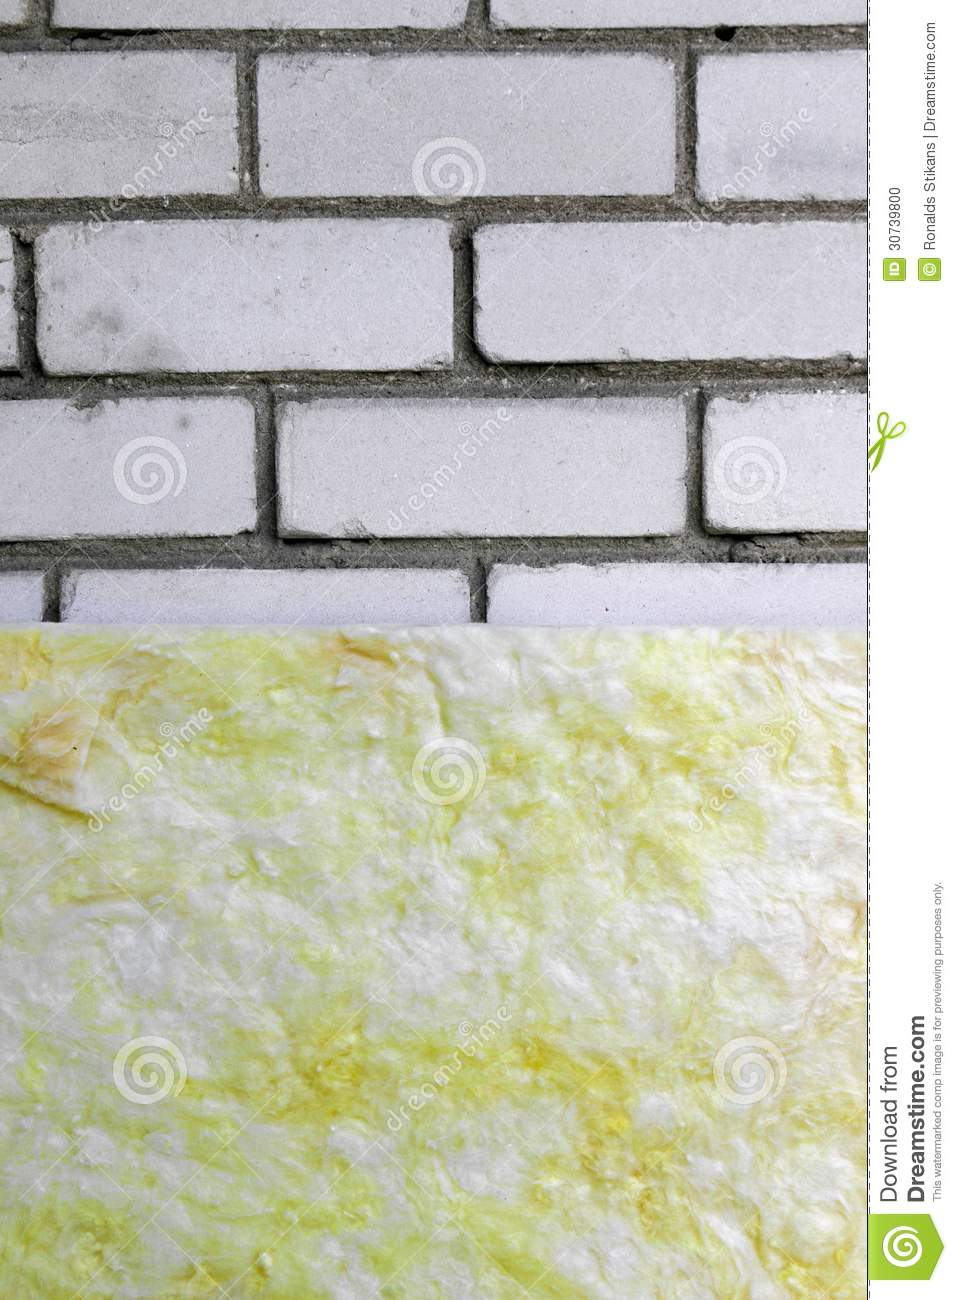 Wall Insulation With Rock Wool Stock Photo Image 30739800